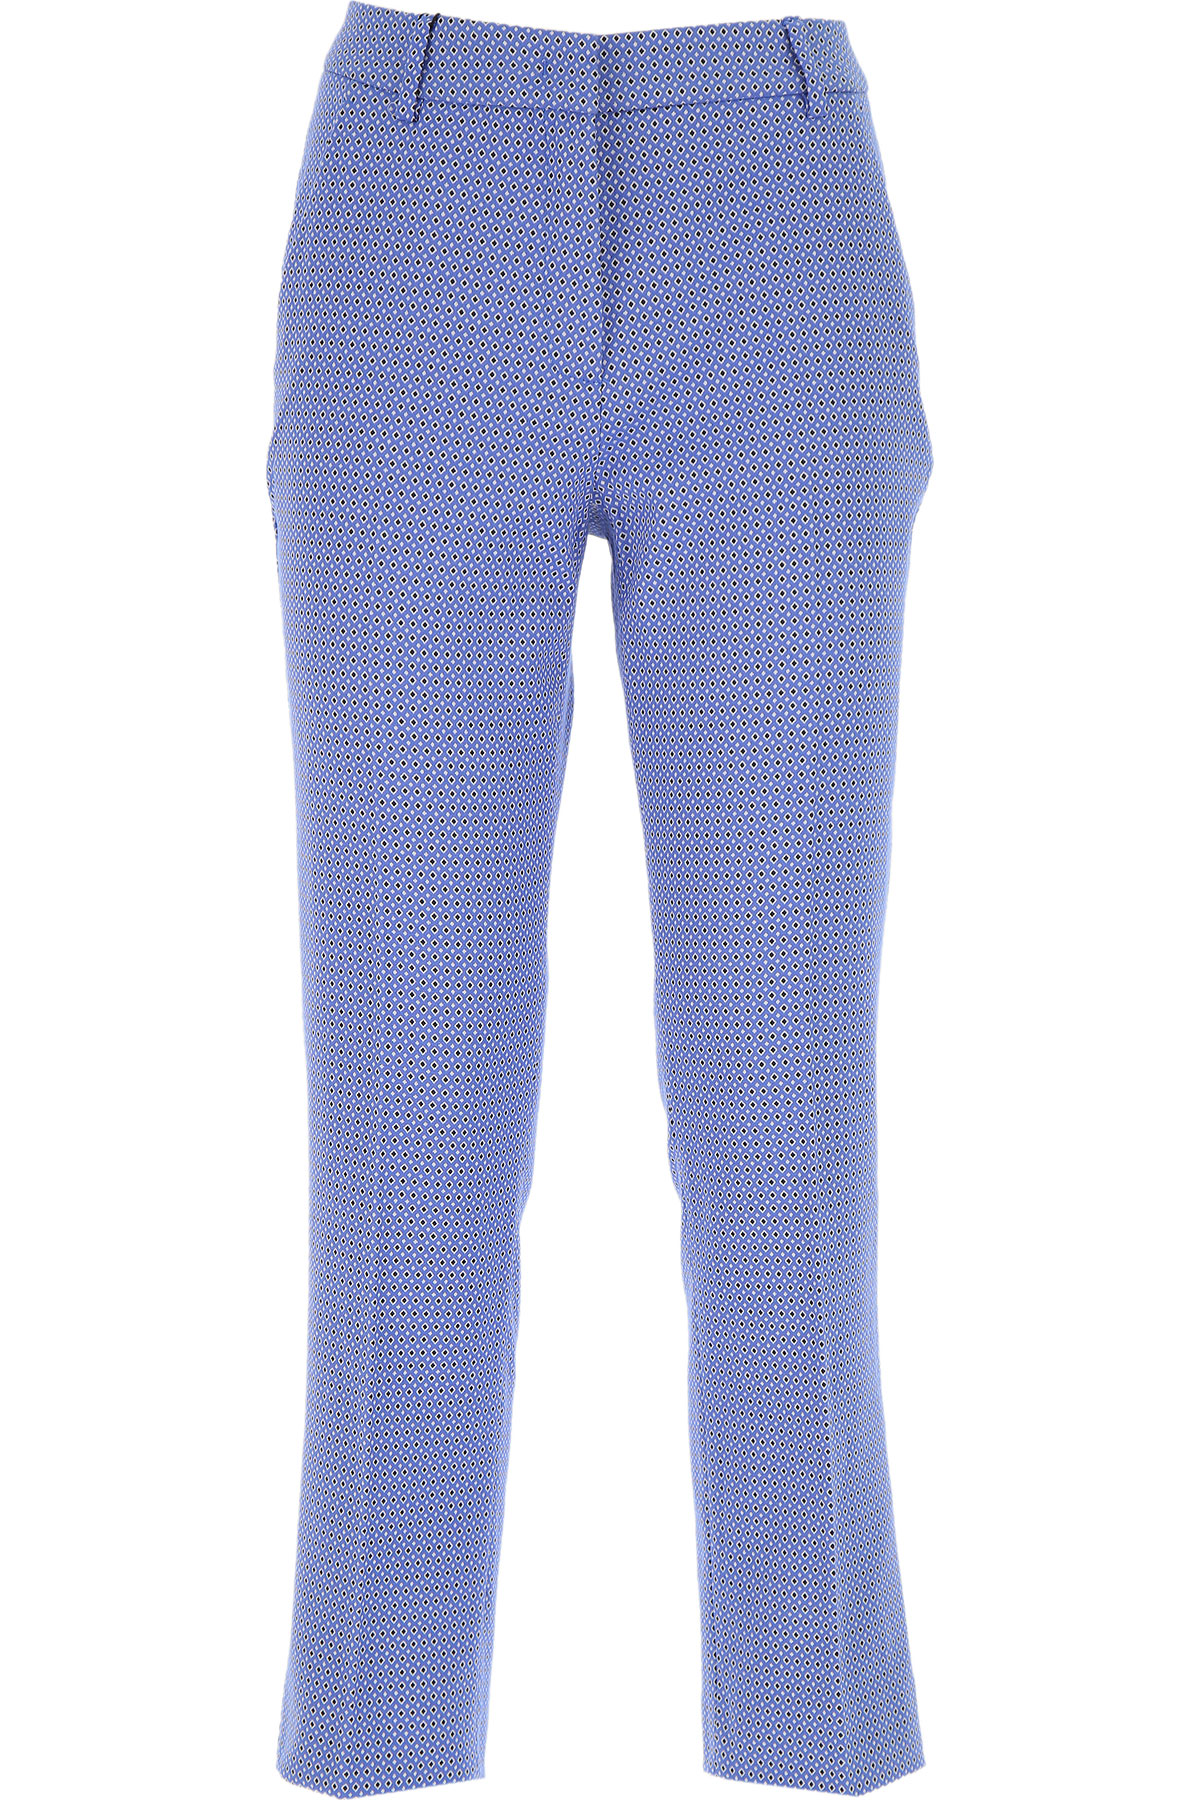 Max Mara Pants for Women On Sale, Denim Blue, polyester, 2019, 30 34 8